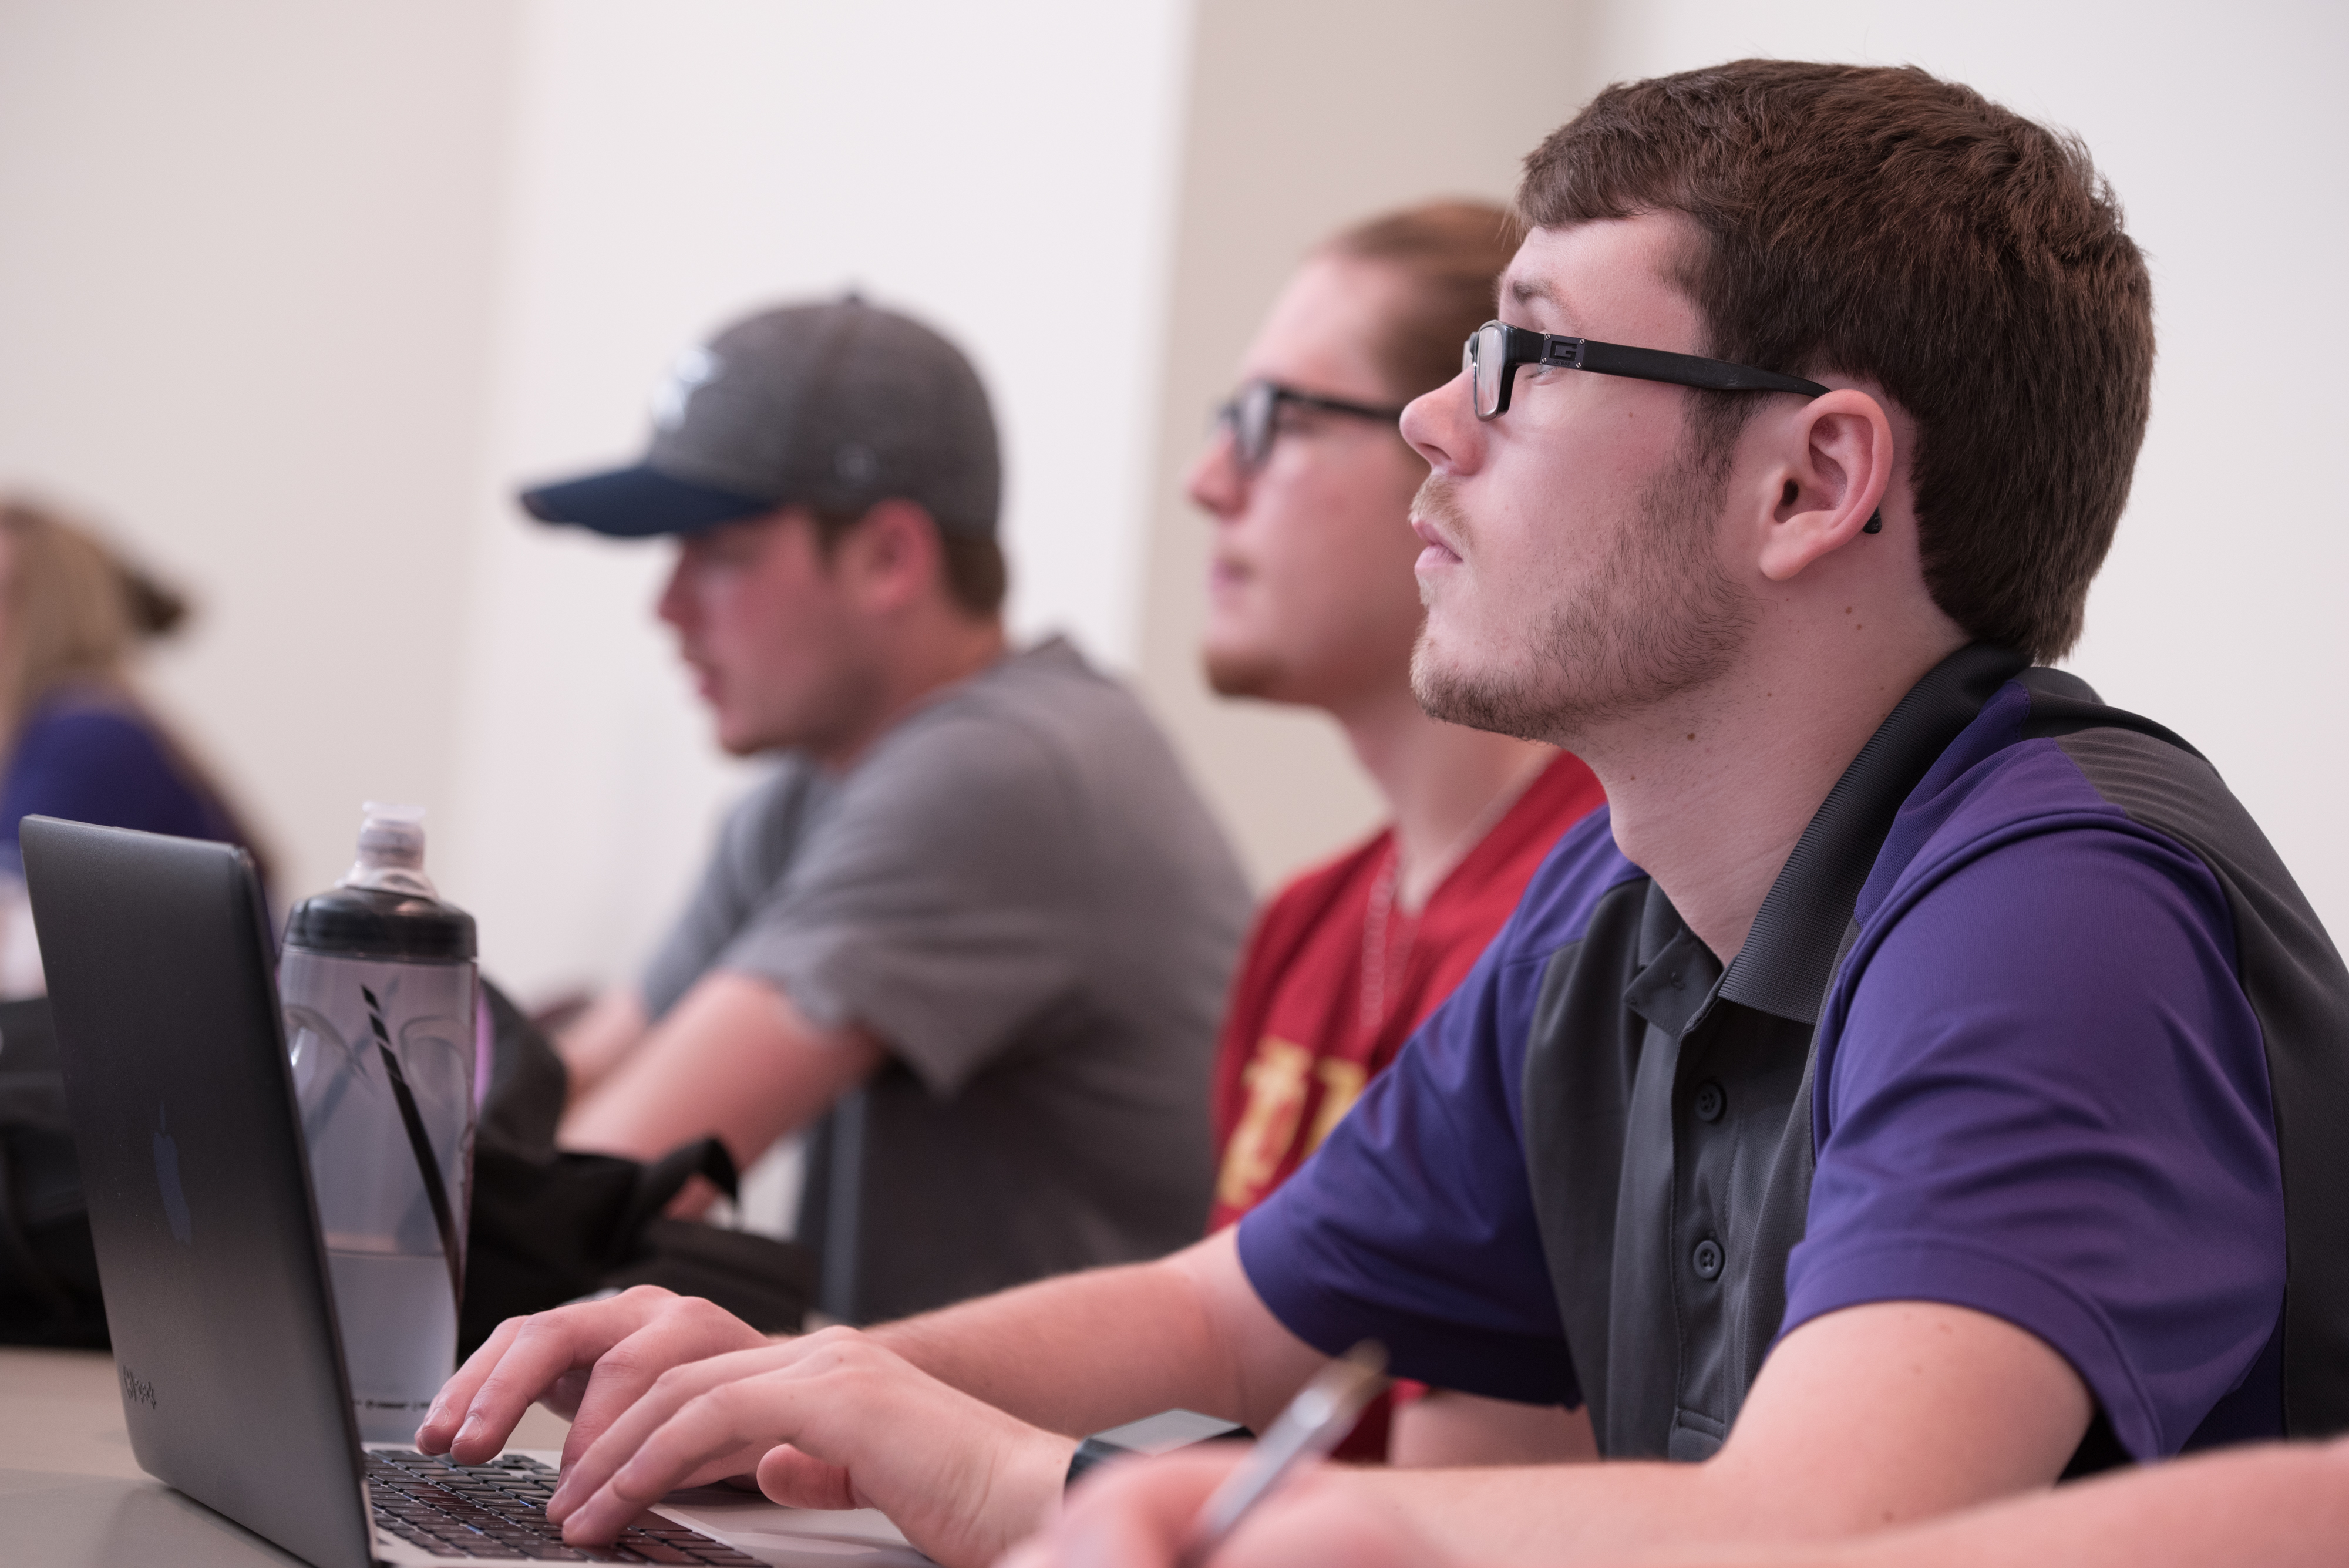 University of Mount Union students in class